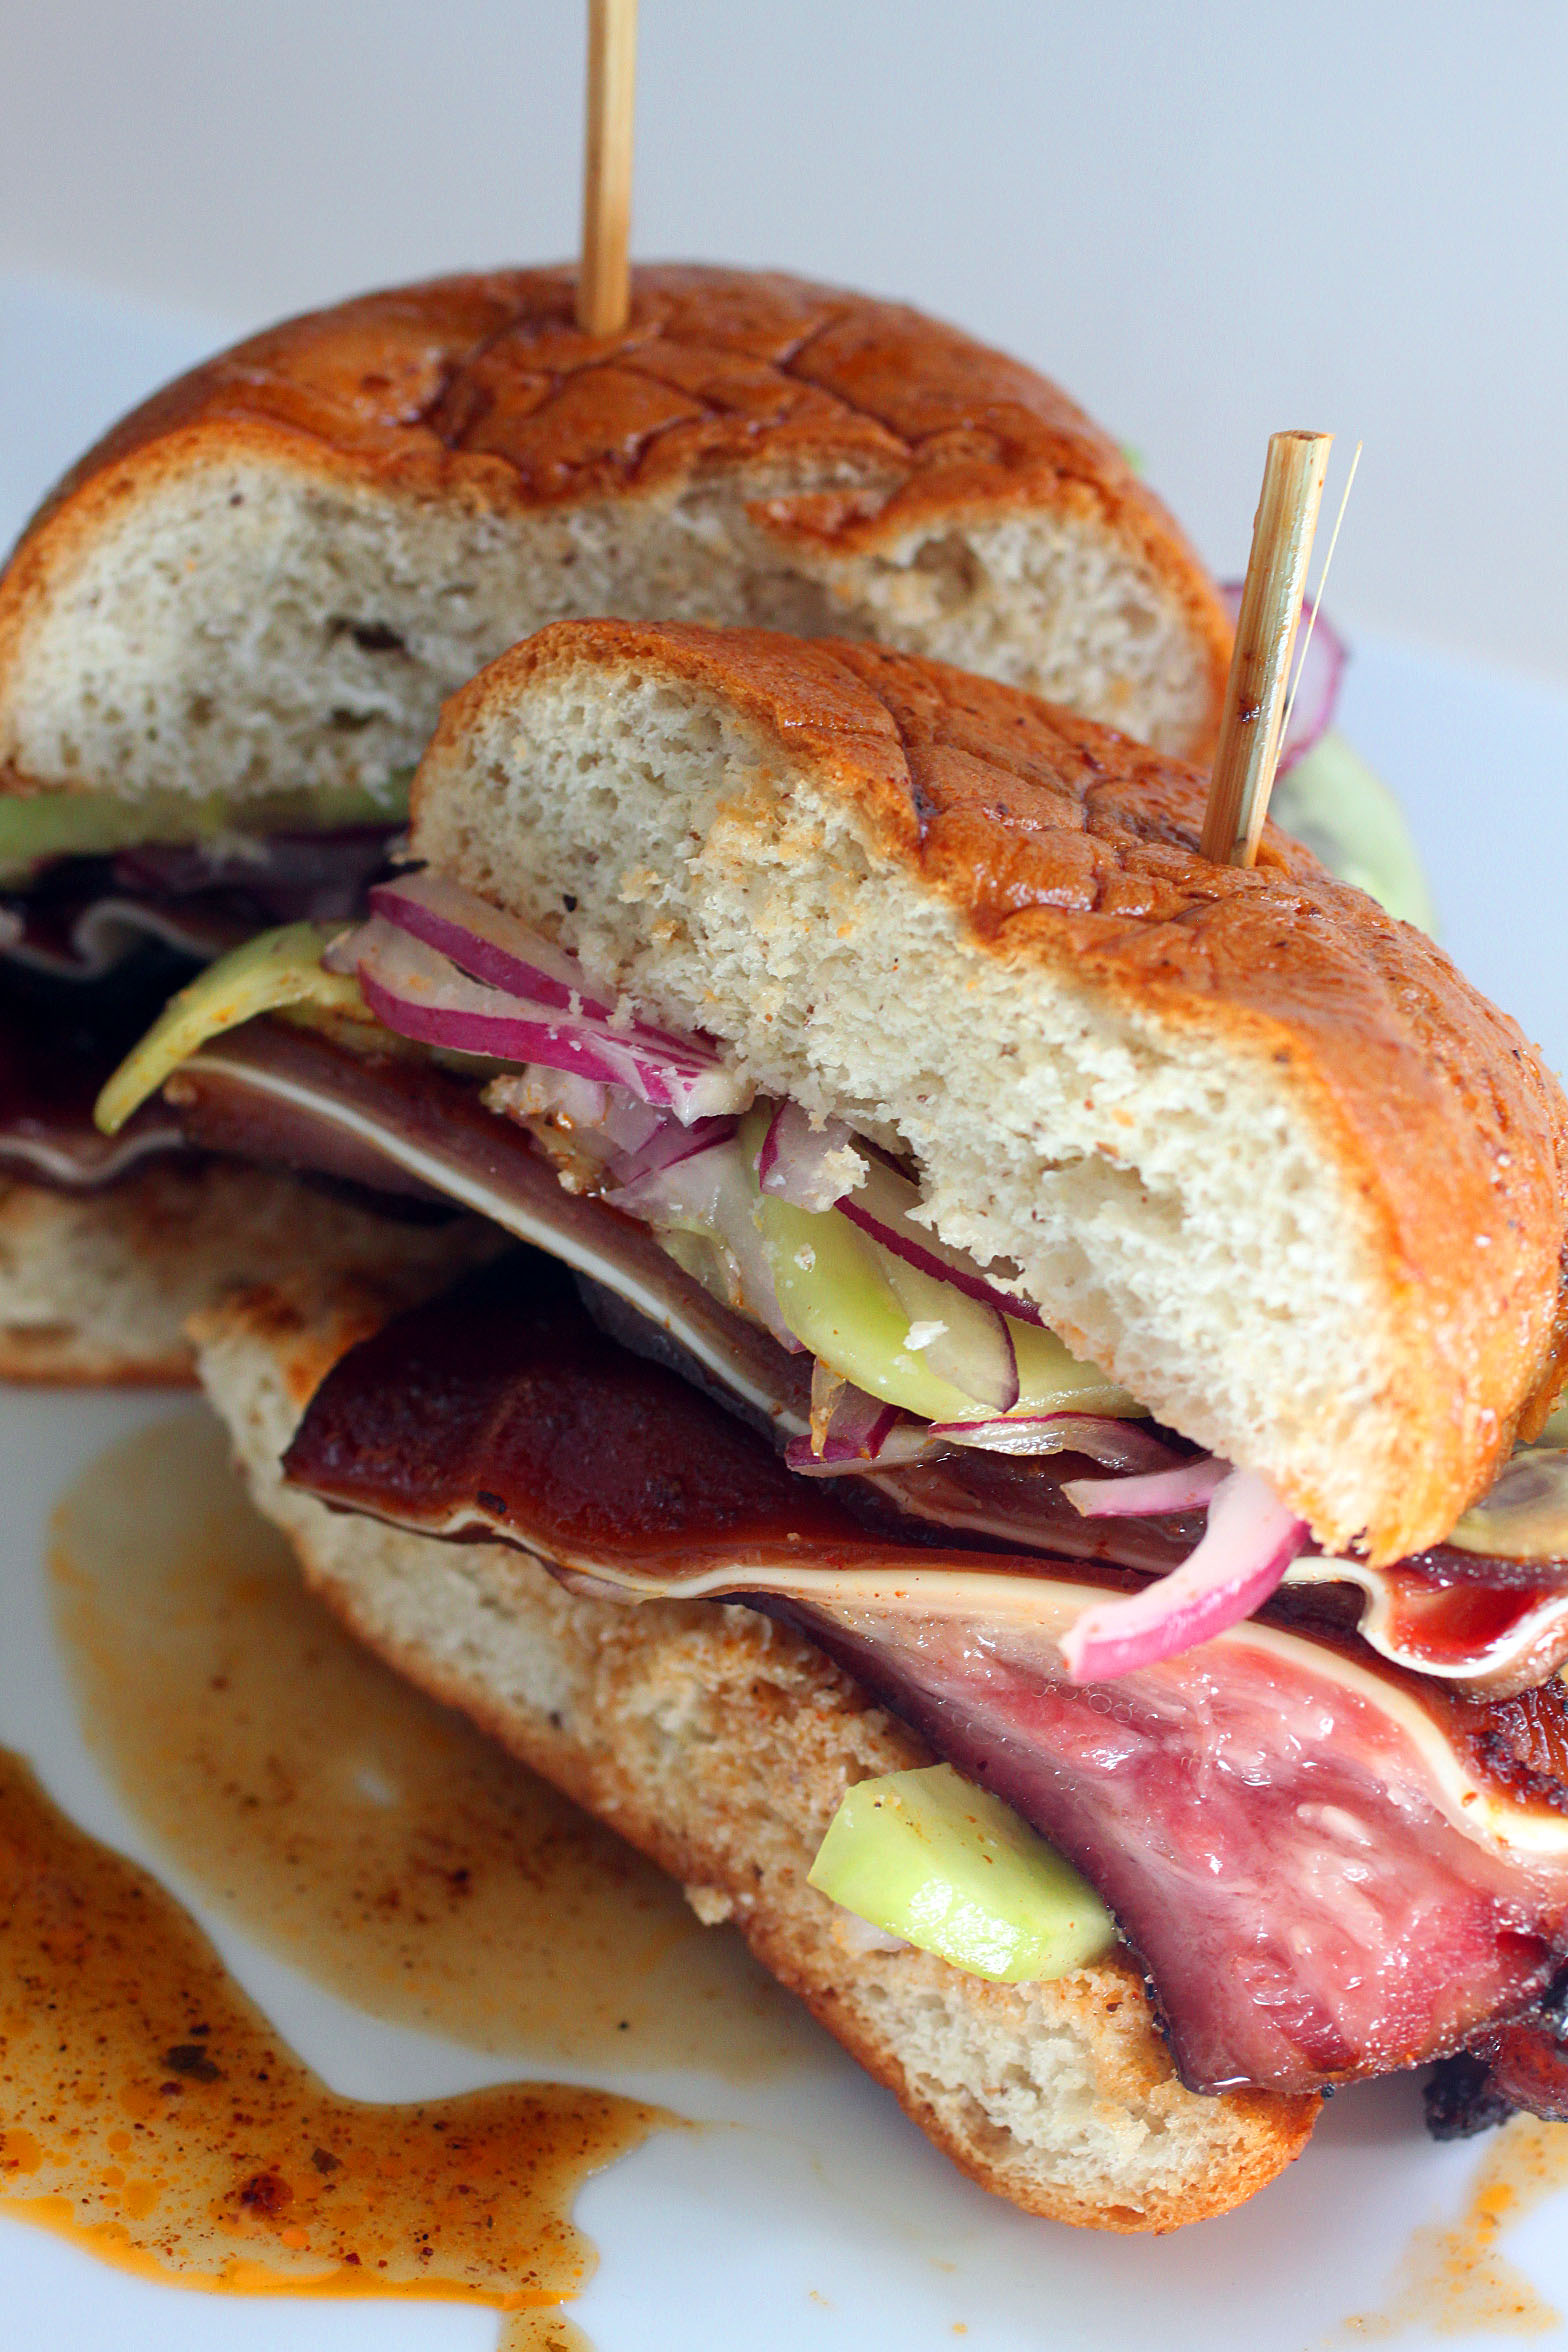 Barbeque Pig Ear Sandwich With Pink Cucumber Onion Relish